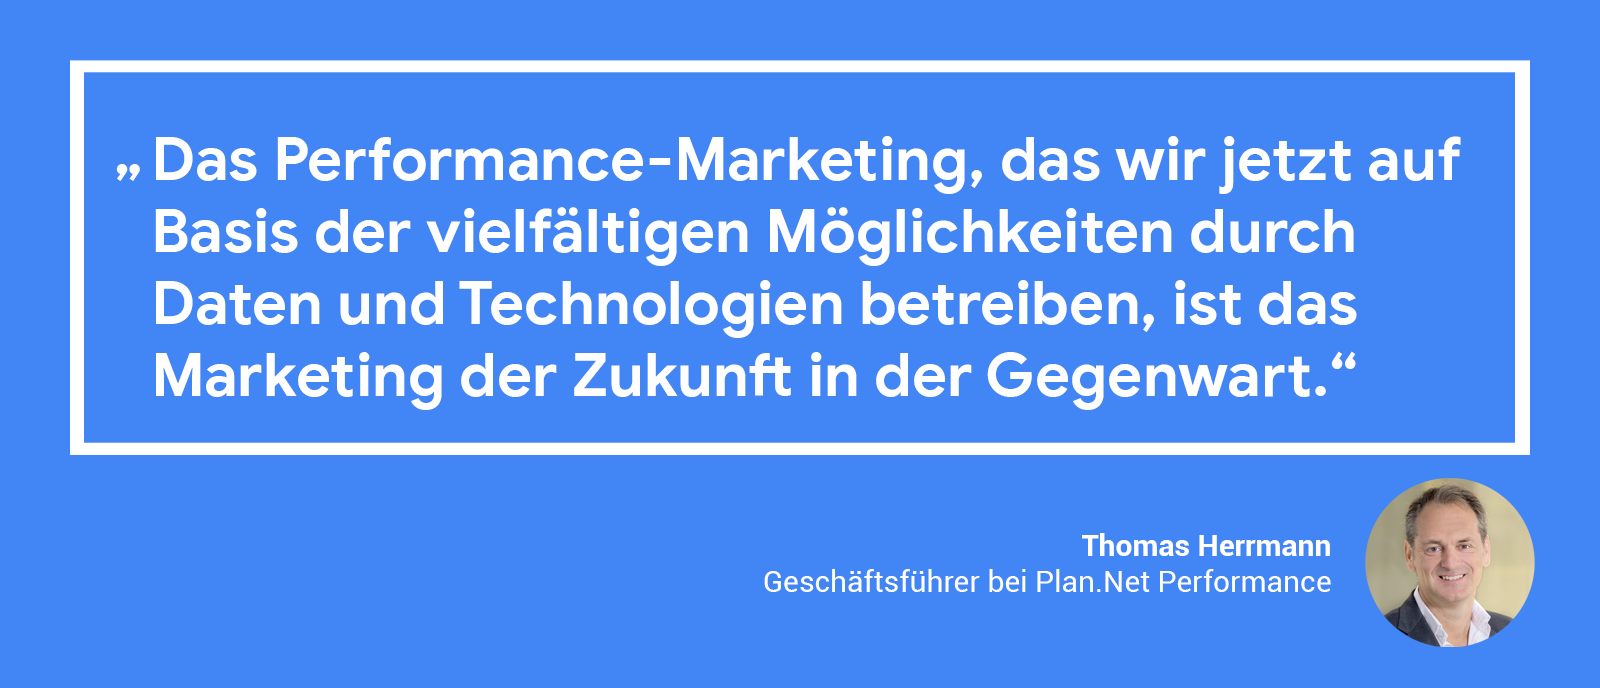 Plan Net Case Study Quote Thomas Herrmann